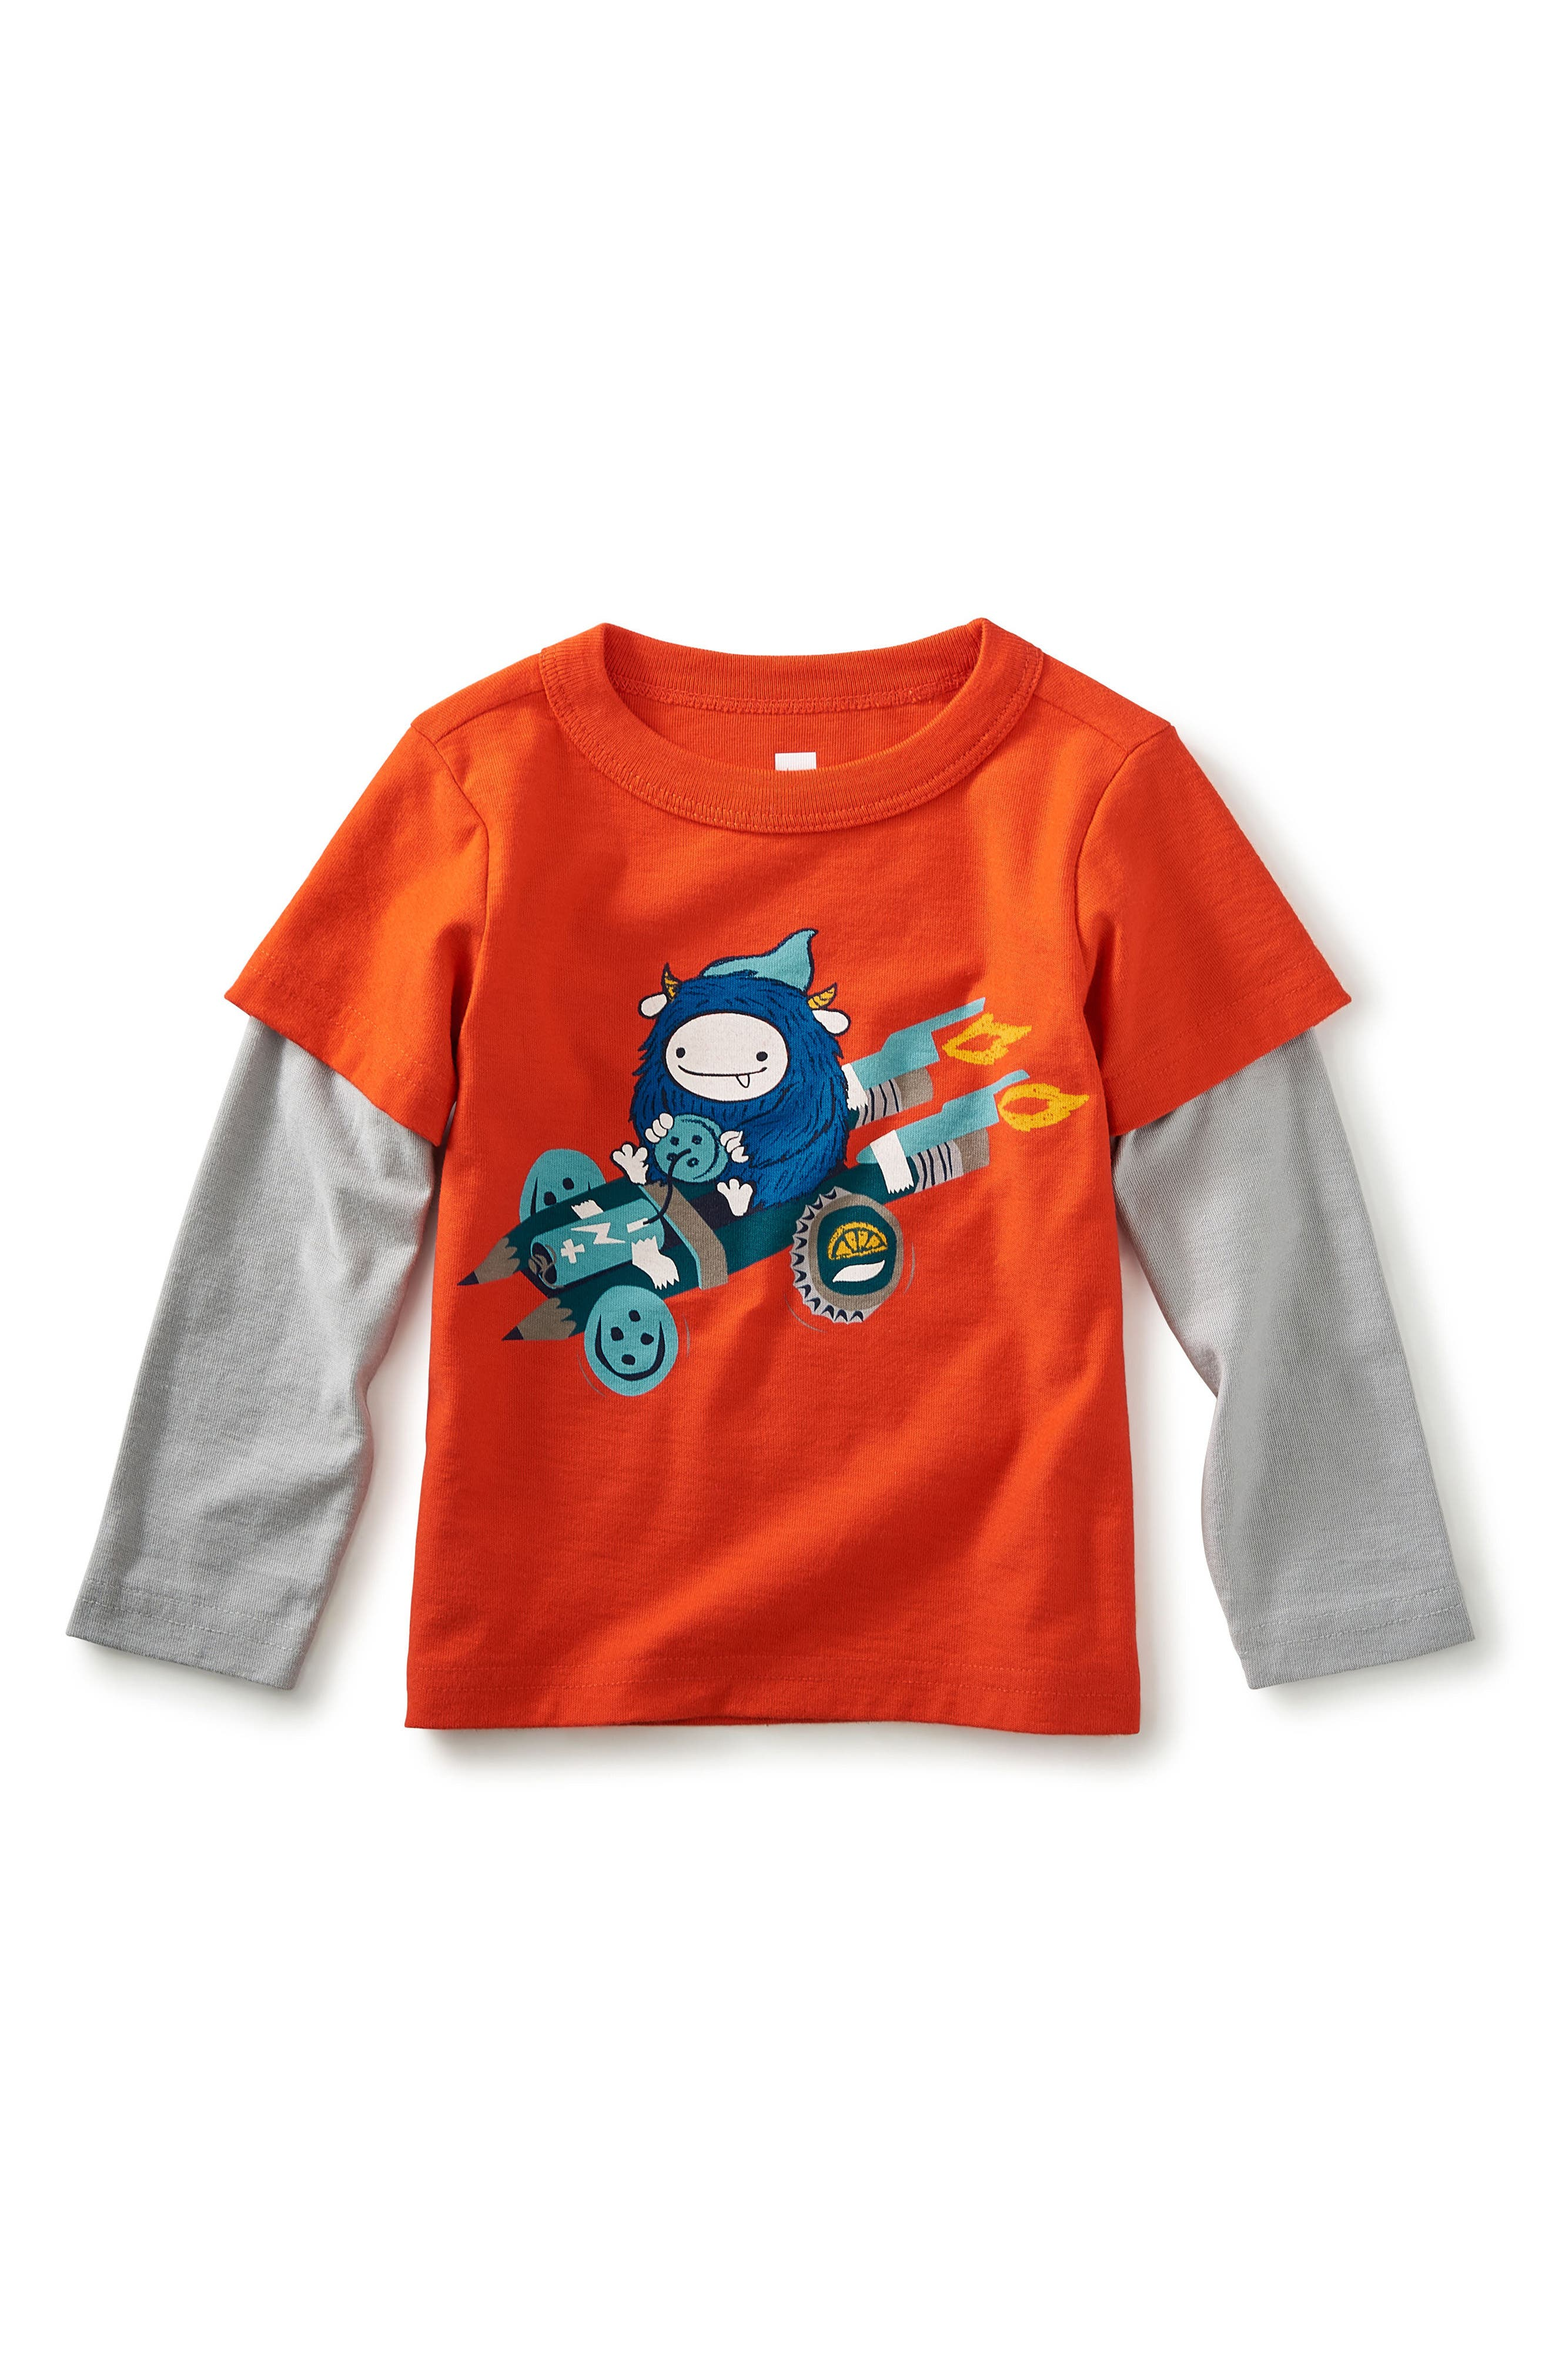 Browniemobile Graphic T-Shirt,                         Main,                         color, Red Finch